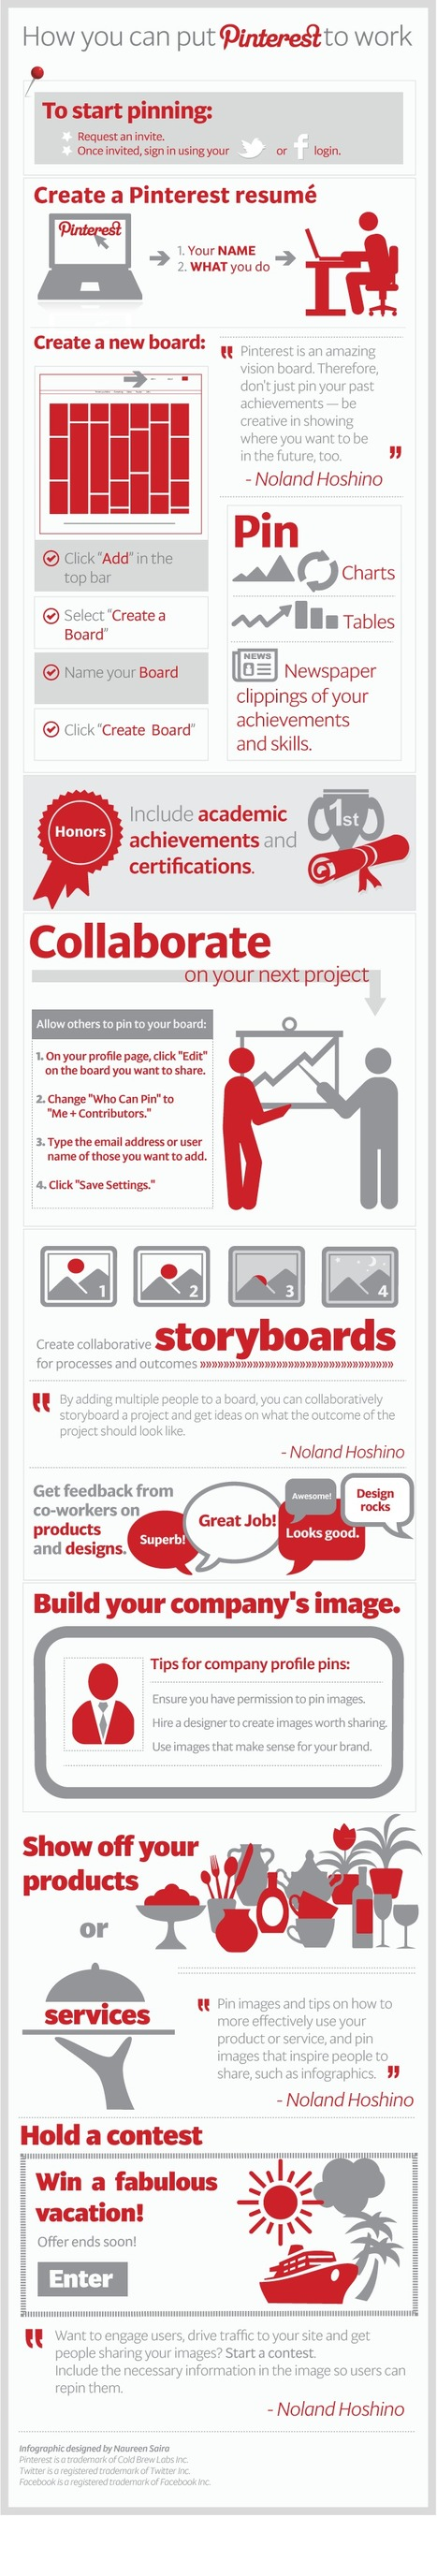 Great Pinterest Tips for Students | Curation Education & Design | Scoop.it